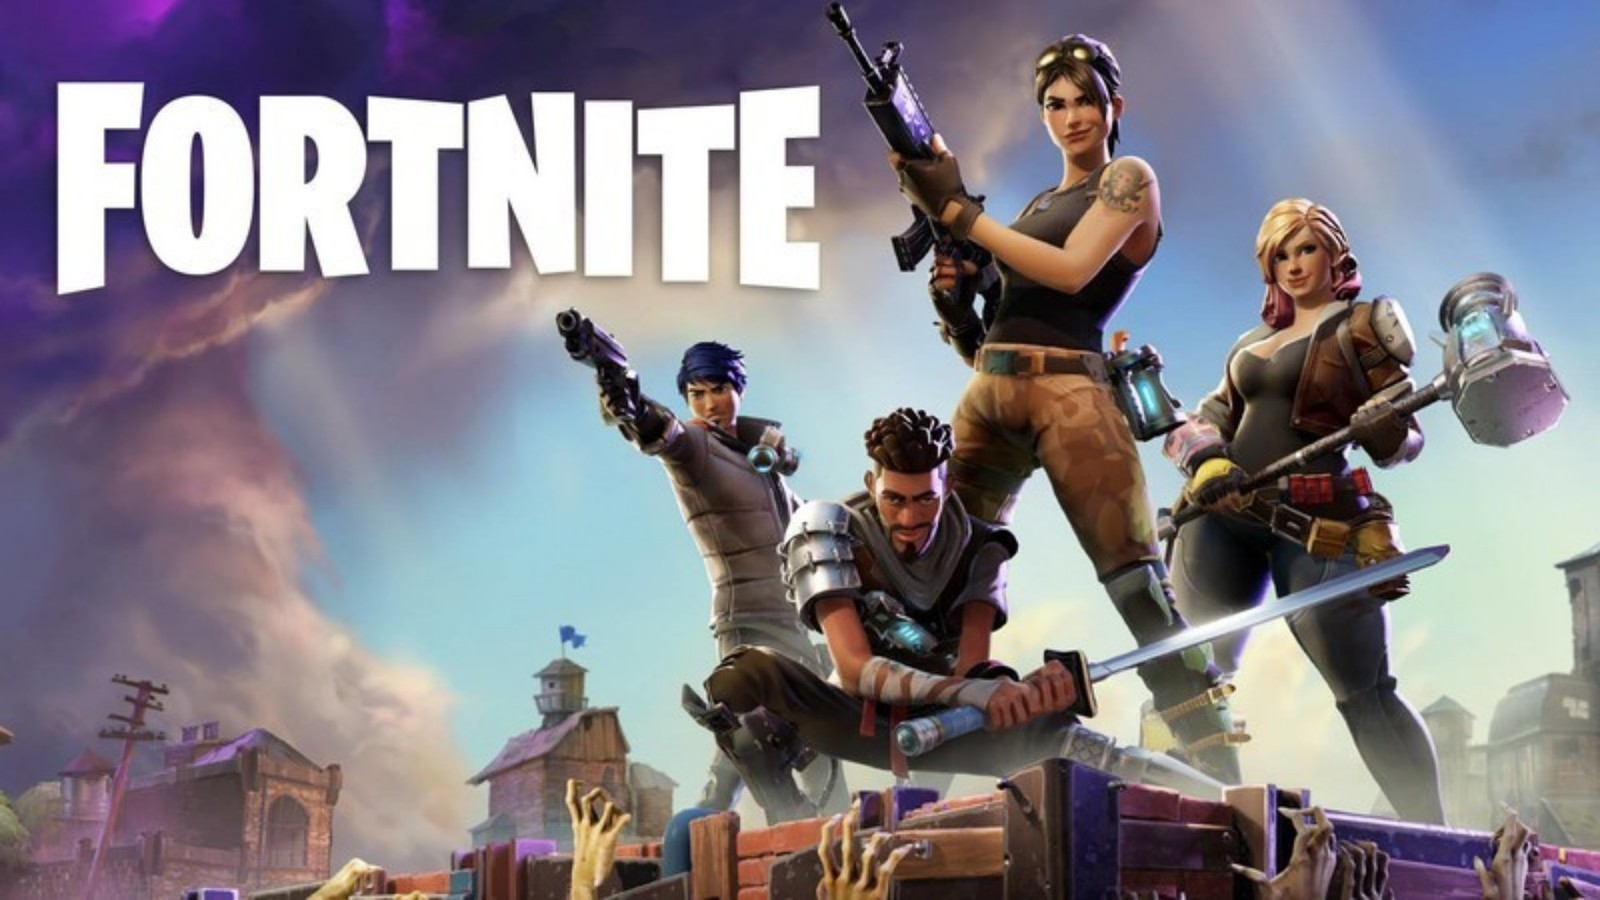 Epic Games may distribute Fortnite for Android on its website rather